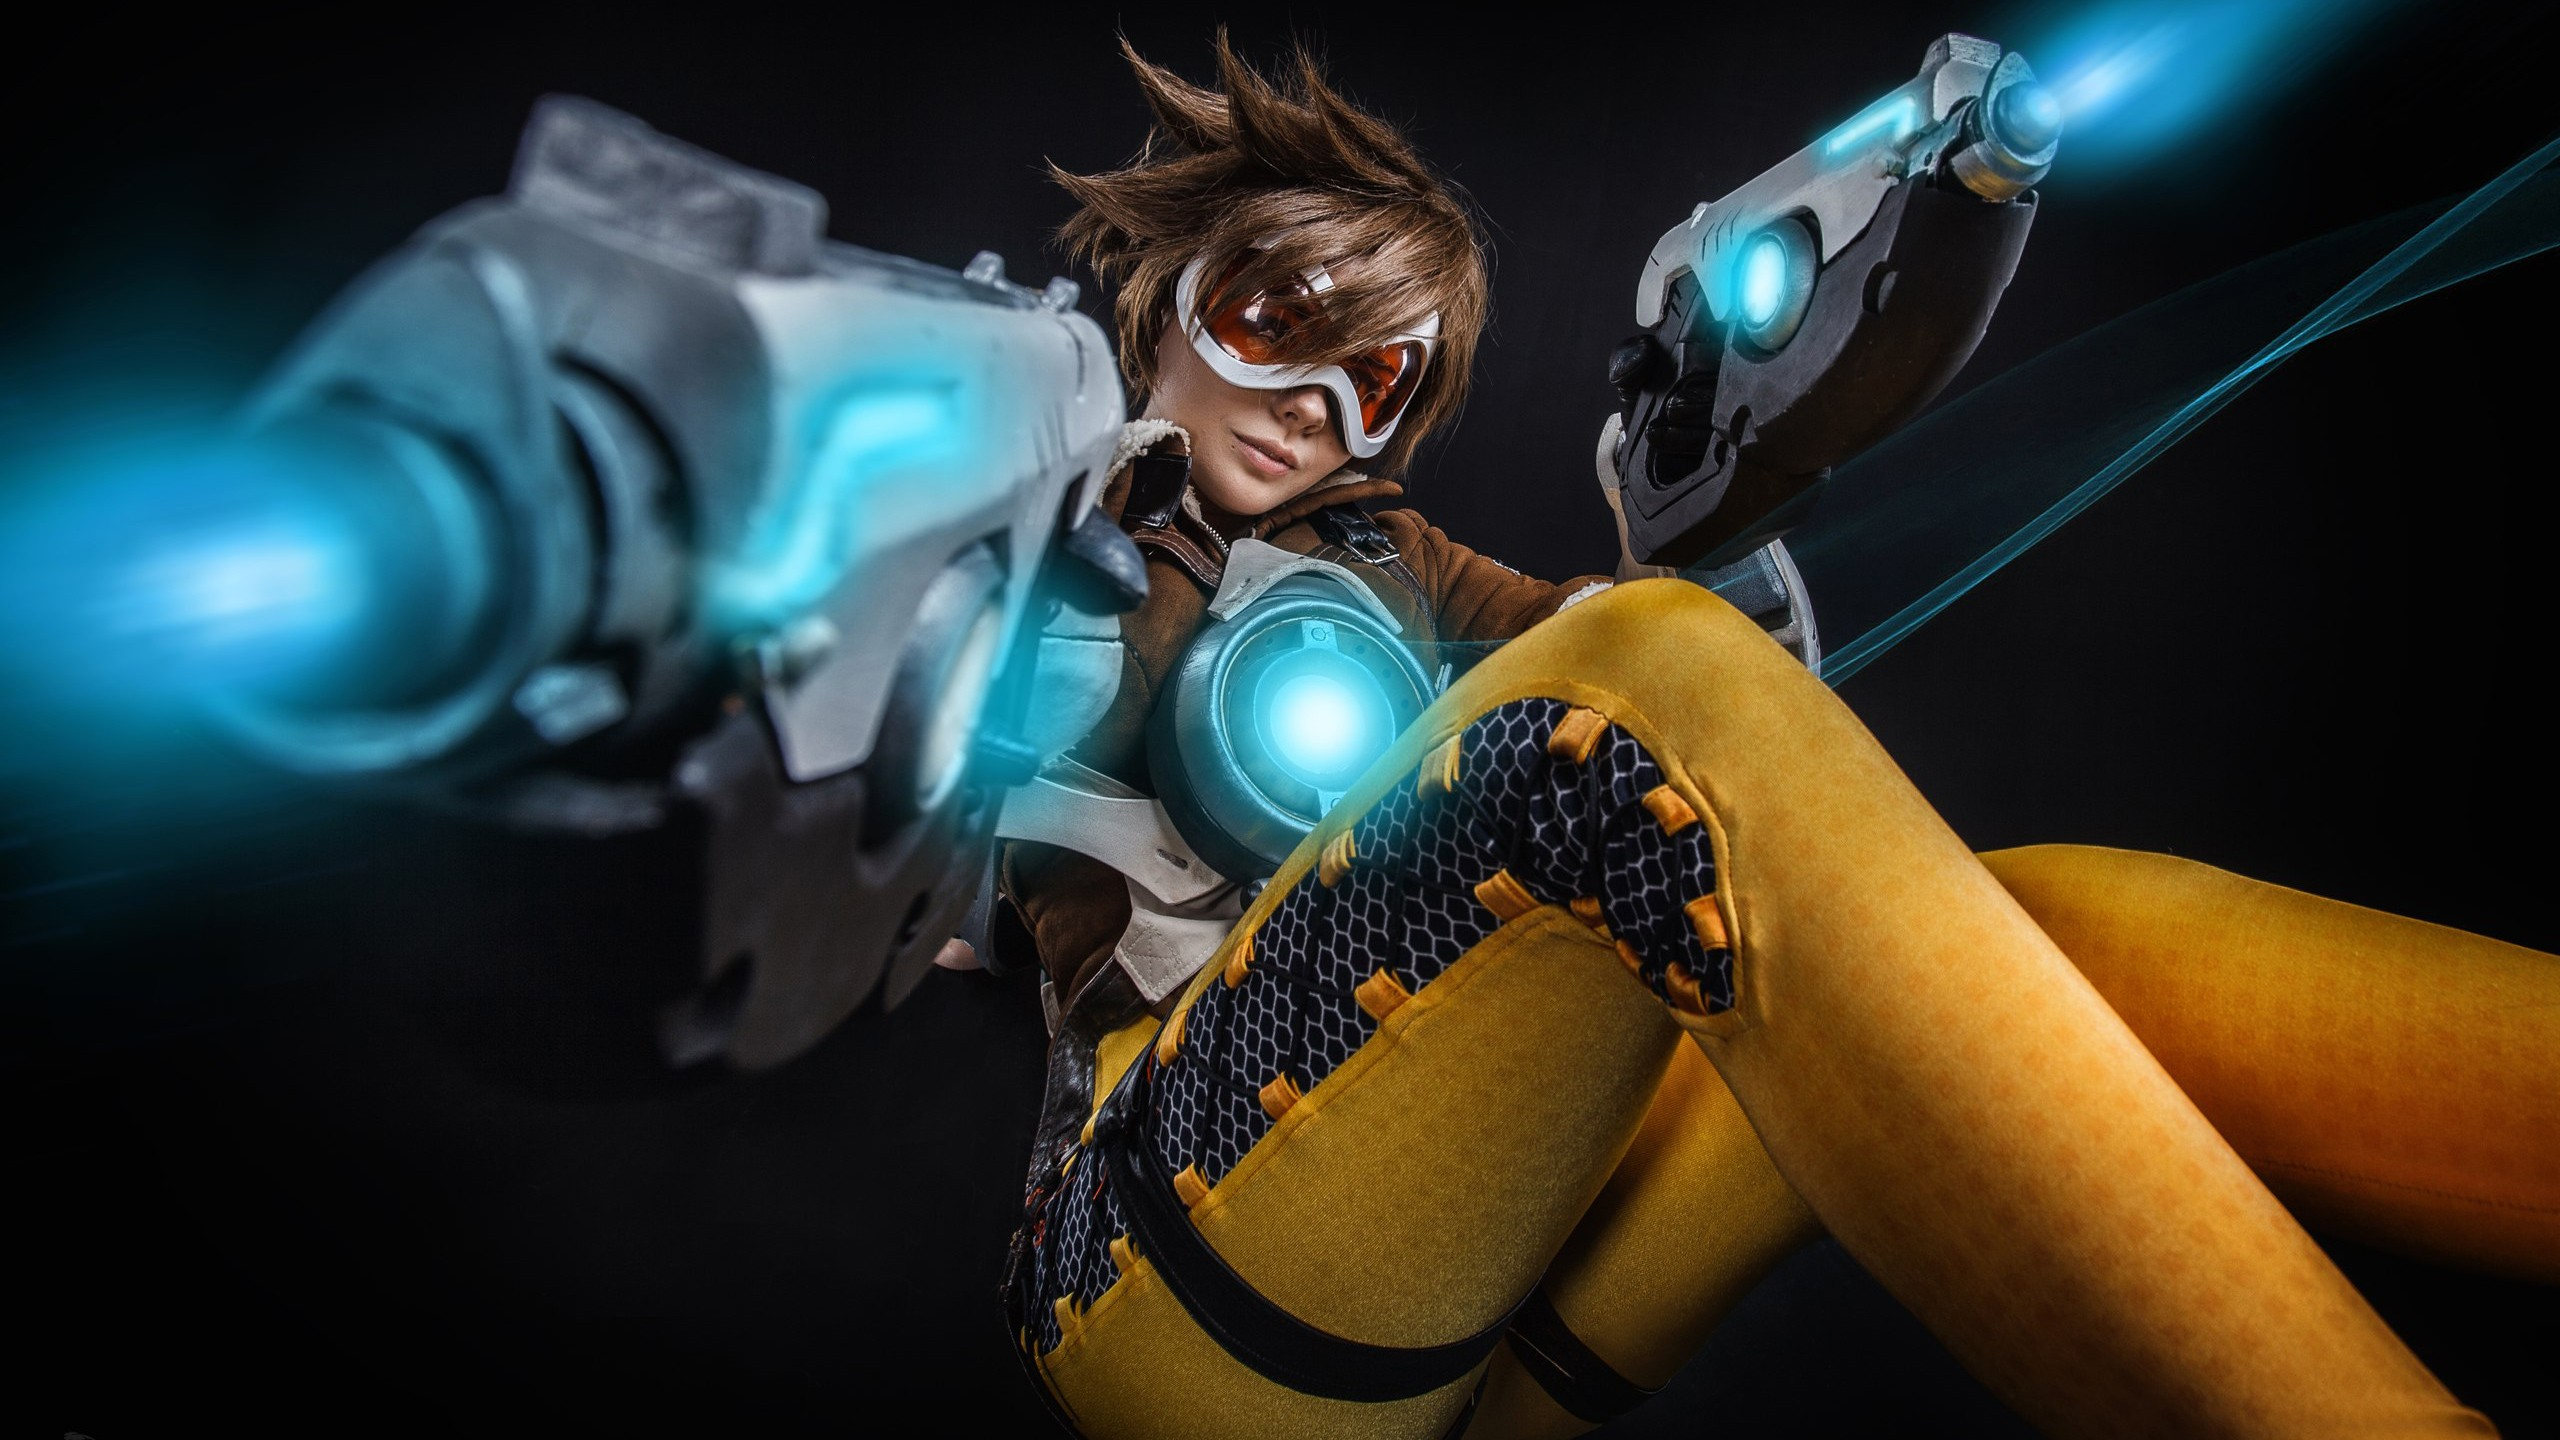 Cool Girls Overwatch Wallpapers Tracer Cosplay Overwatch Wallpapers Hd Wallpapers Id